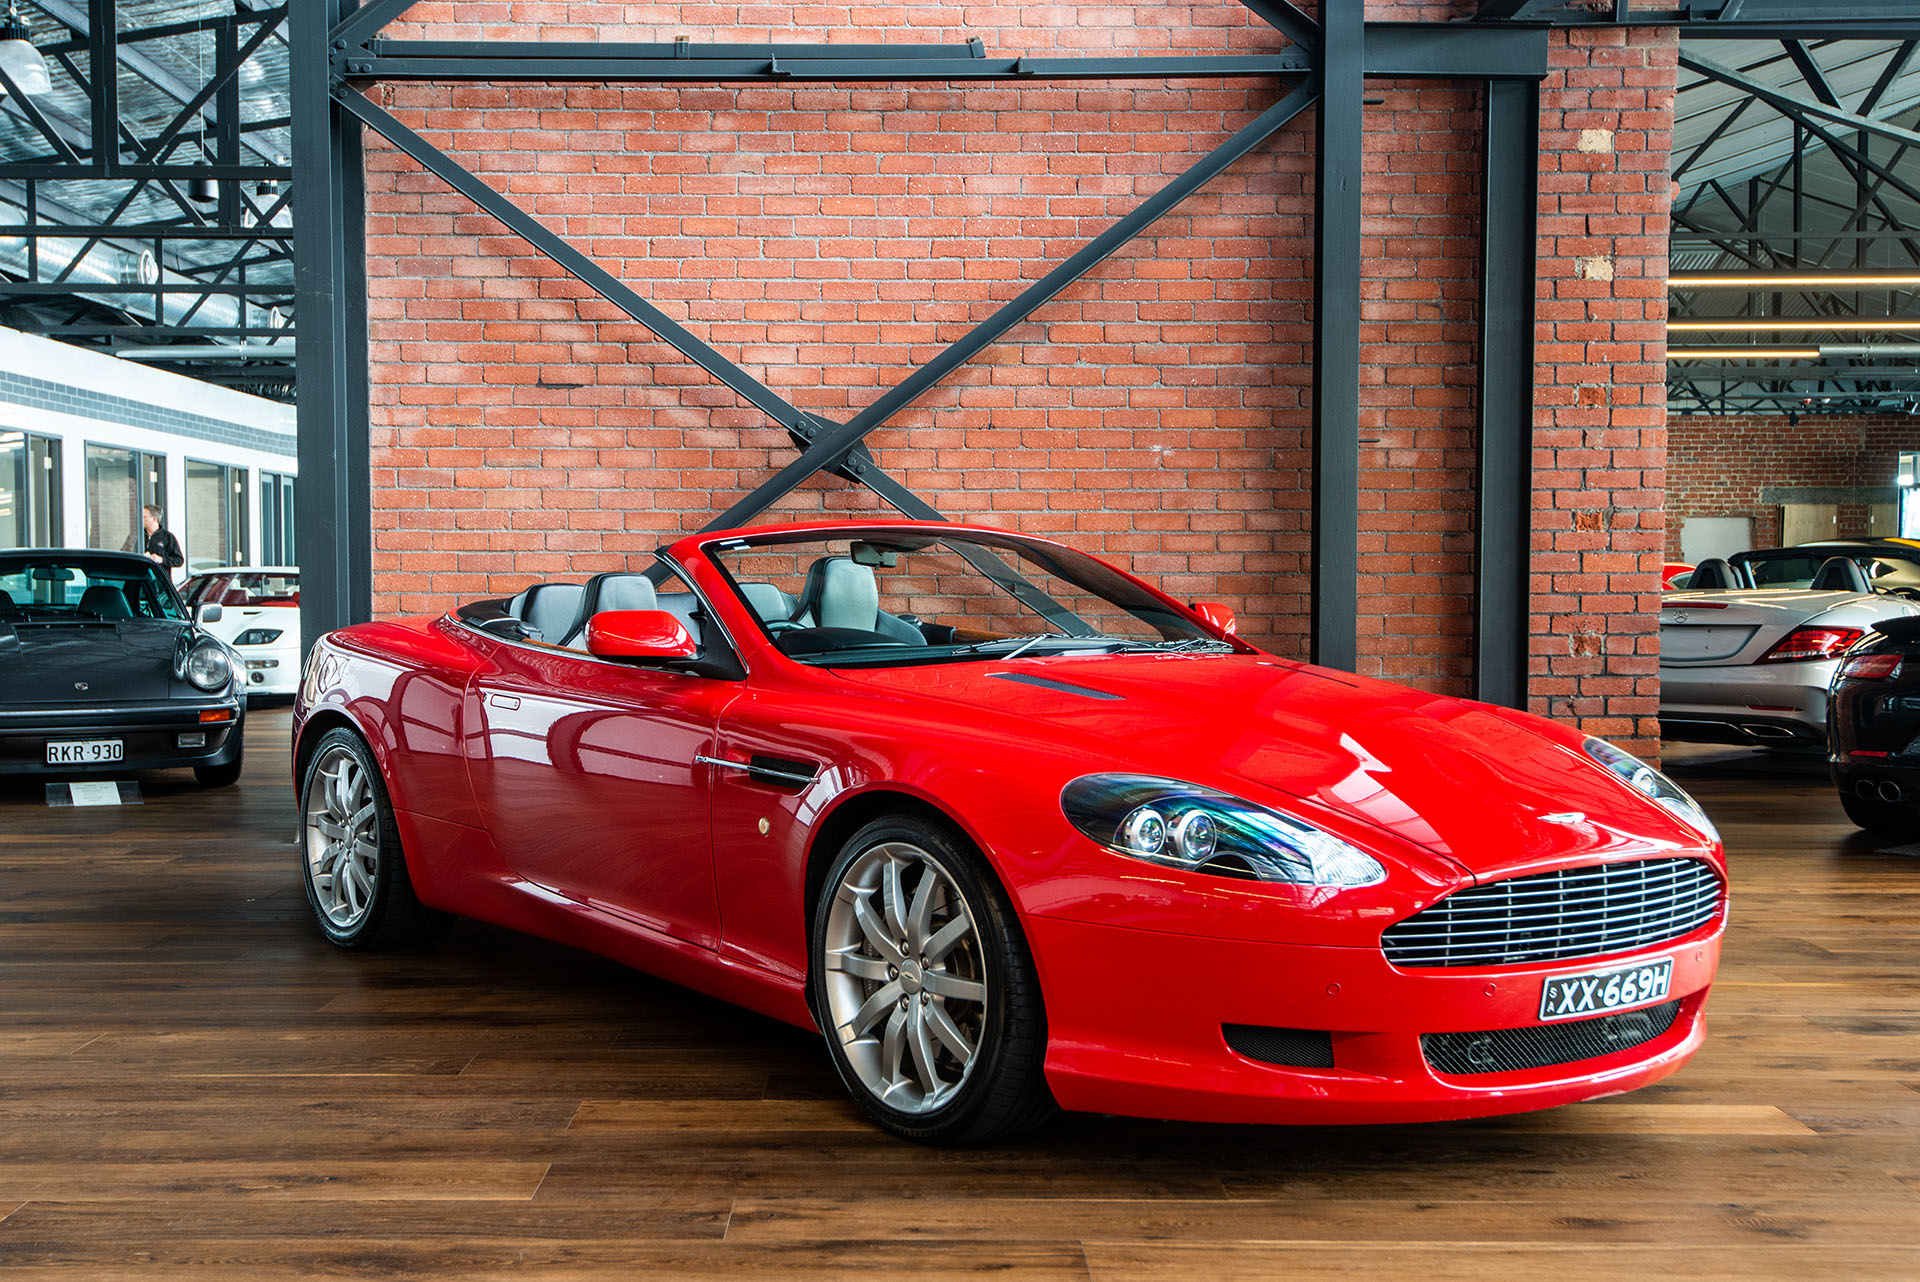 Aston Martin Db9 Volante Red 22 Richmonds Classic And Prestige Cars Storage And Sales Adelaide Australia